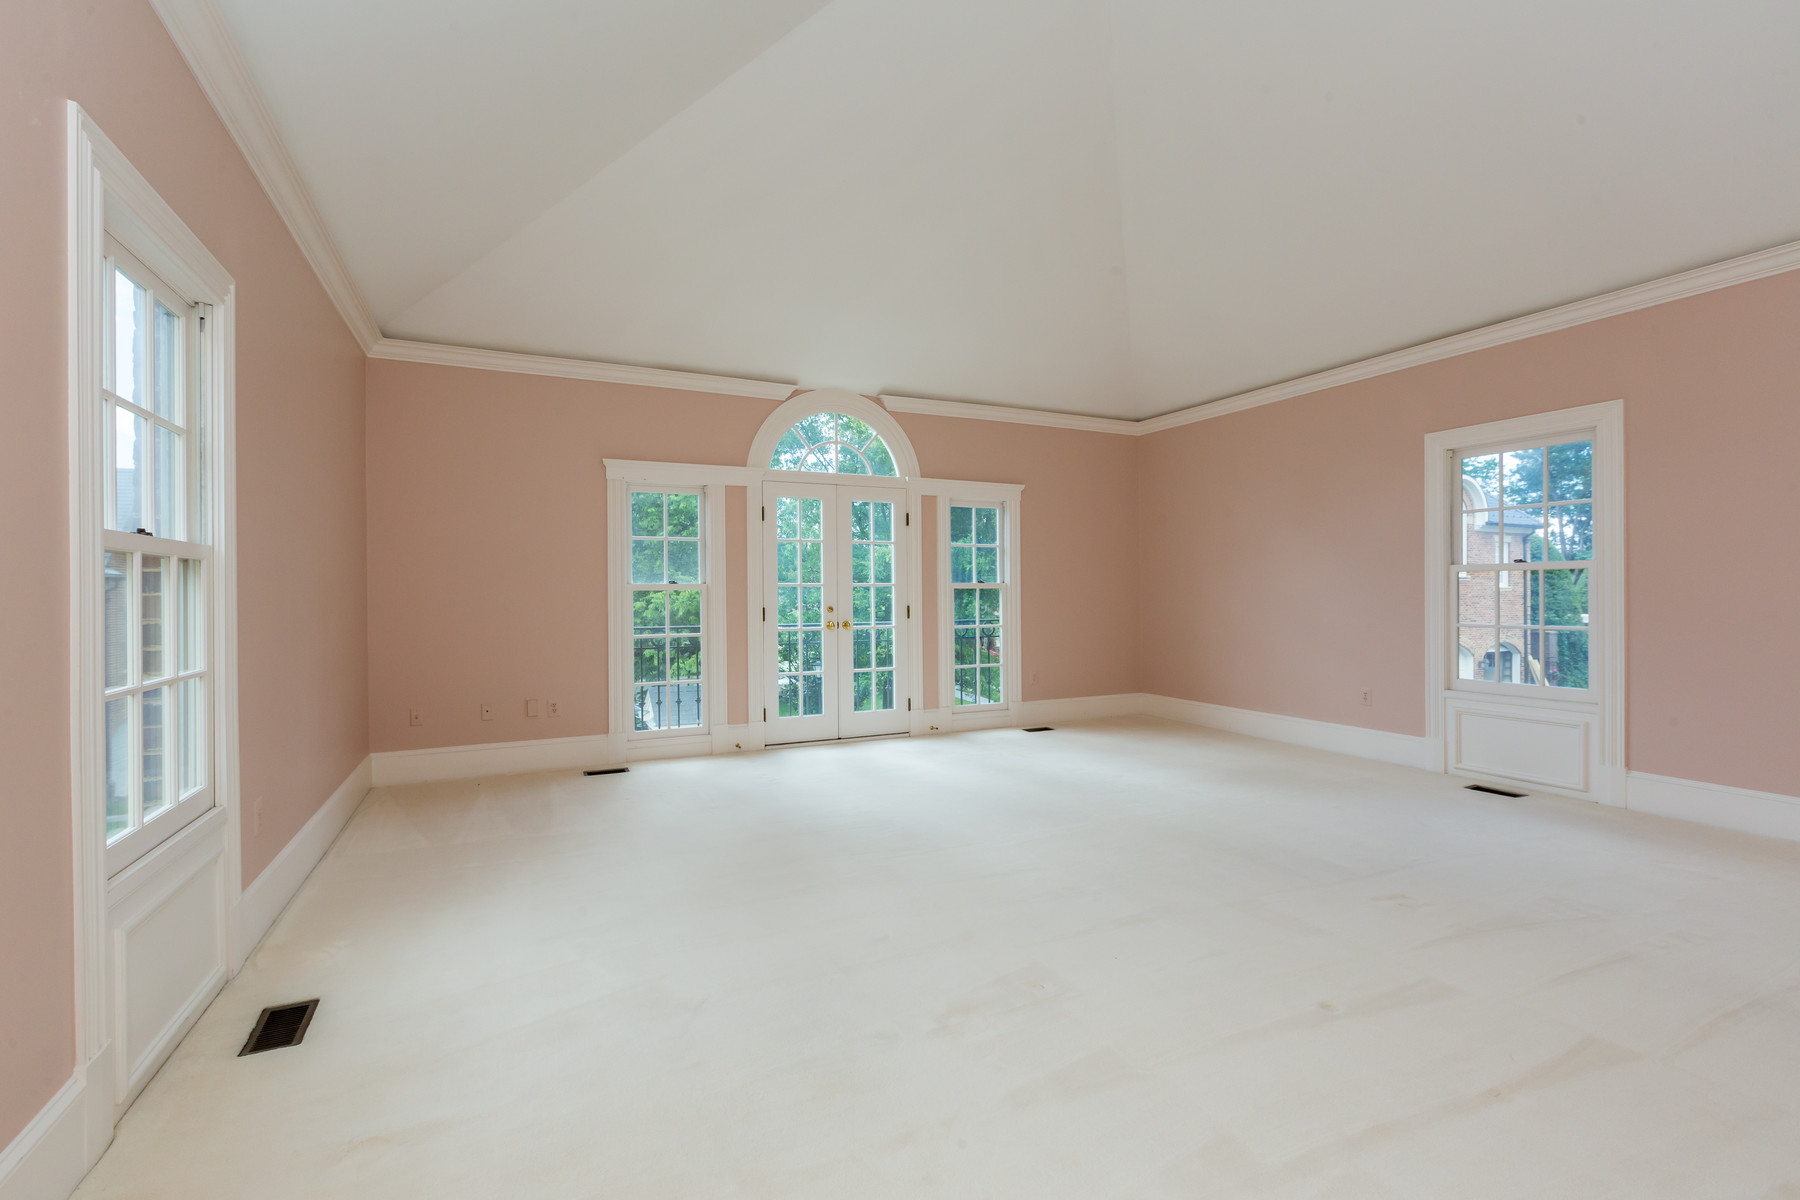 Additional photo for property listing at 1209 Stuart Robeson Drive, McLean  McLean, Виргиния 22101 Соединенные Штаты